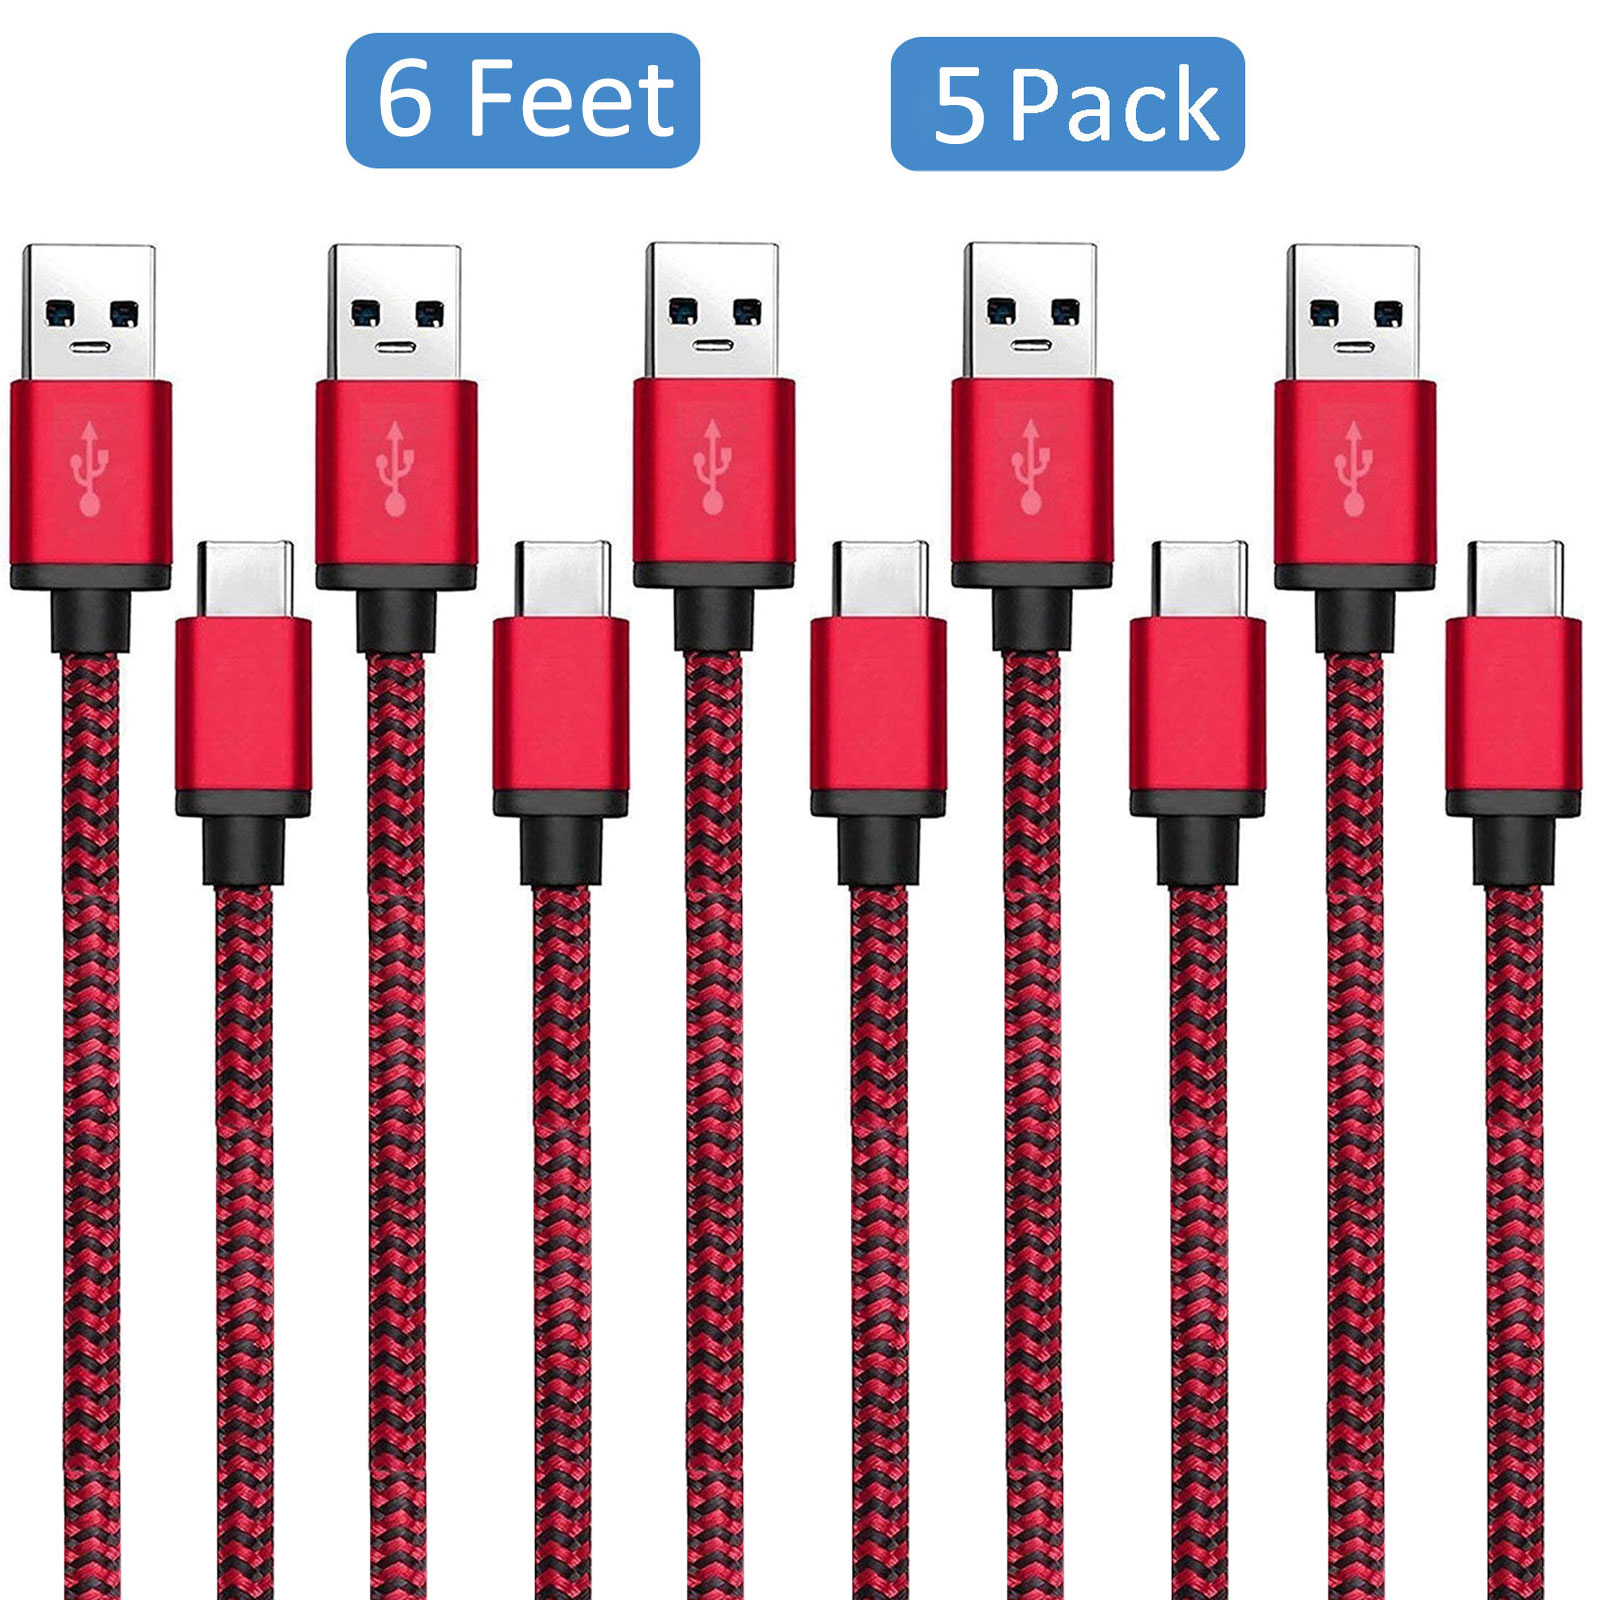 5-pack 6ft USB 3.1 Type C Charging Sync Data Cable Charger Cord for Samsung Galaxy S9 S8 S8 Plus Note 9/8,LG G7 G6 G5 V40 V30, Nexus 5X 6P,Google Pixel 3/3 XL, Oneplus 6T/6/5